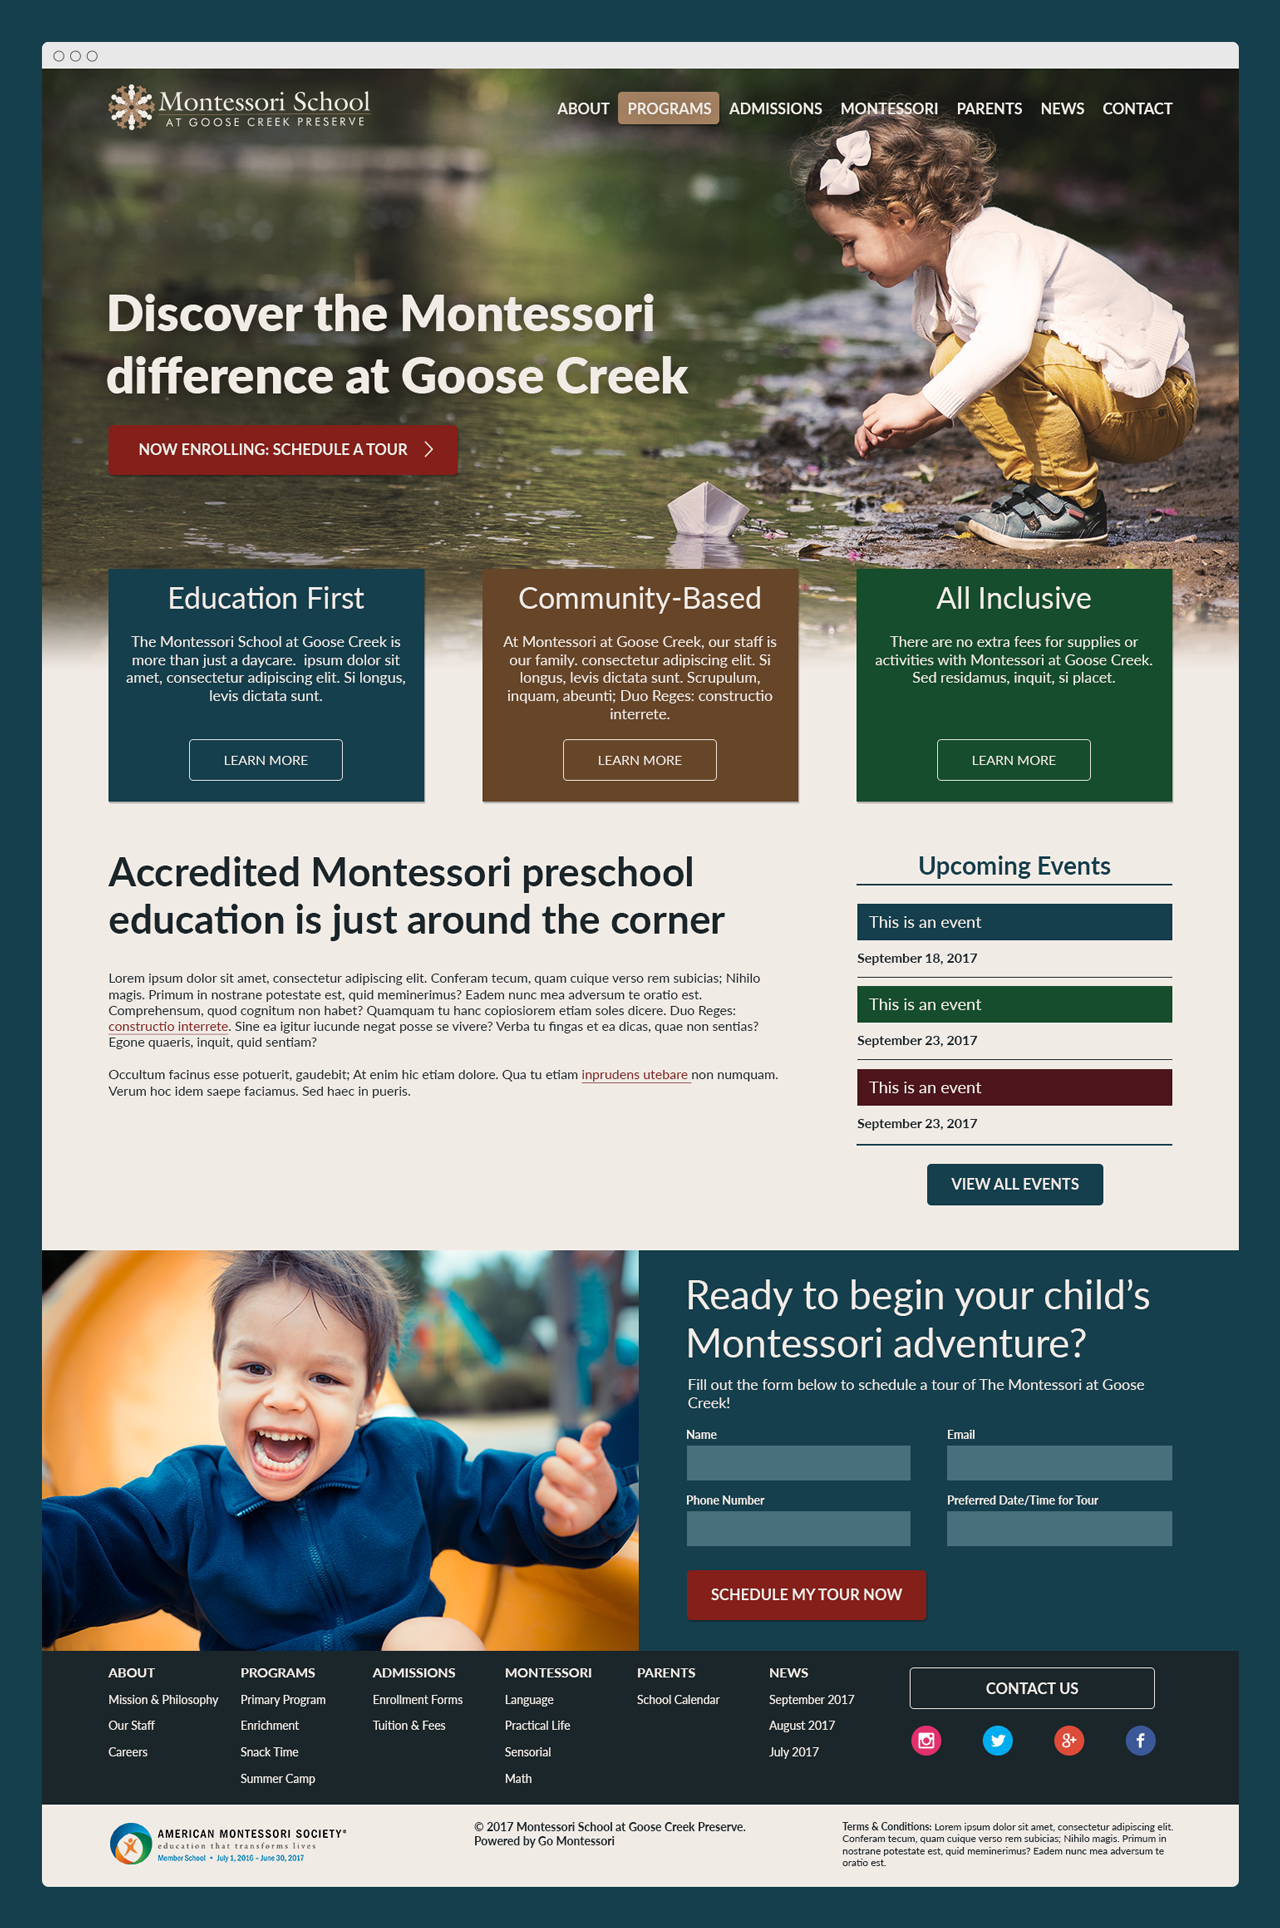 Go Montessori custom site design for Goose Creek Montessori School